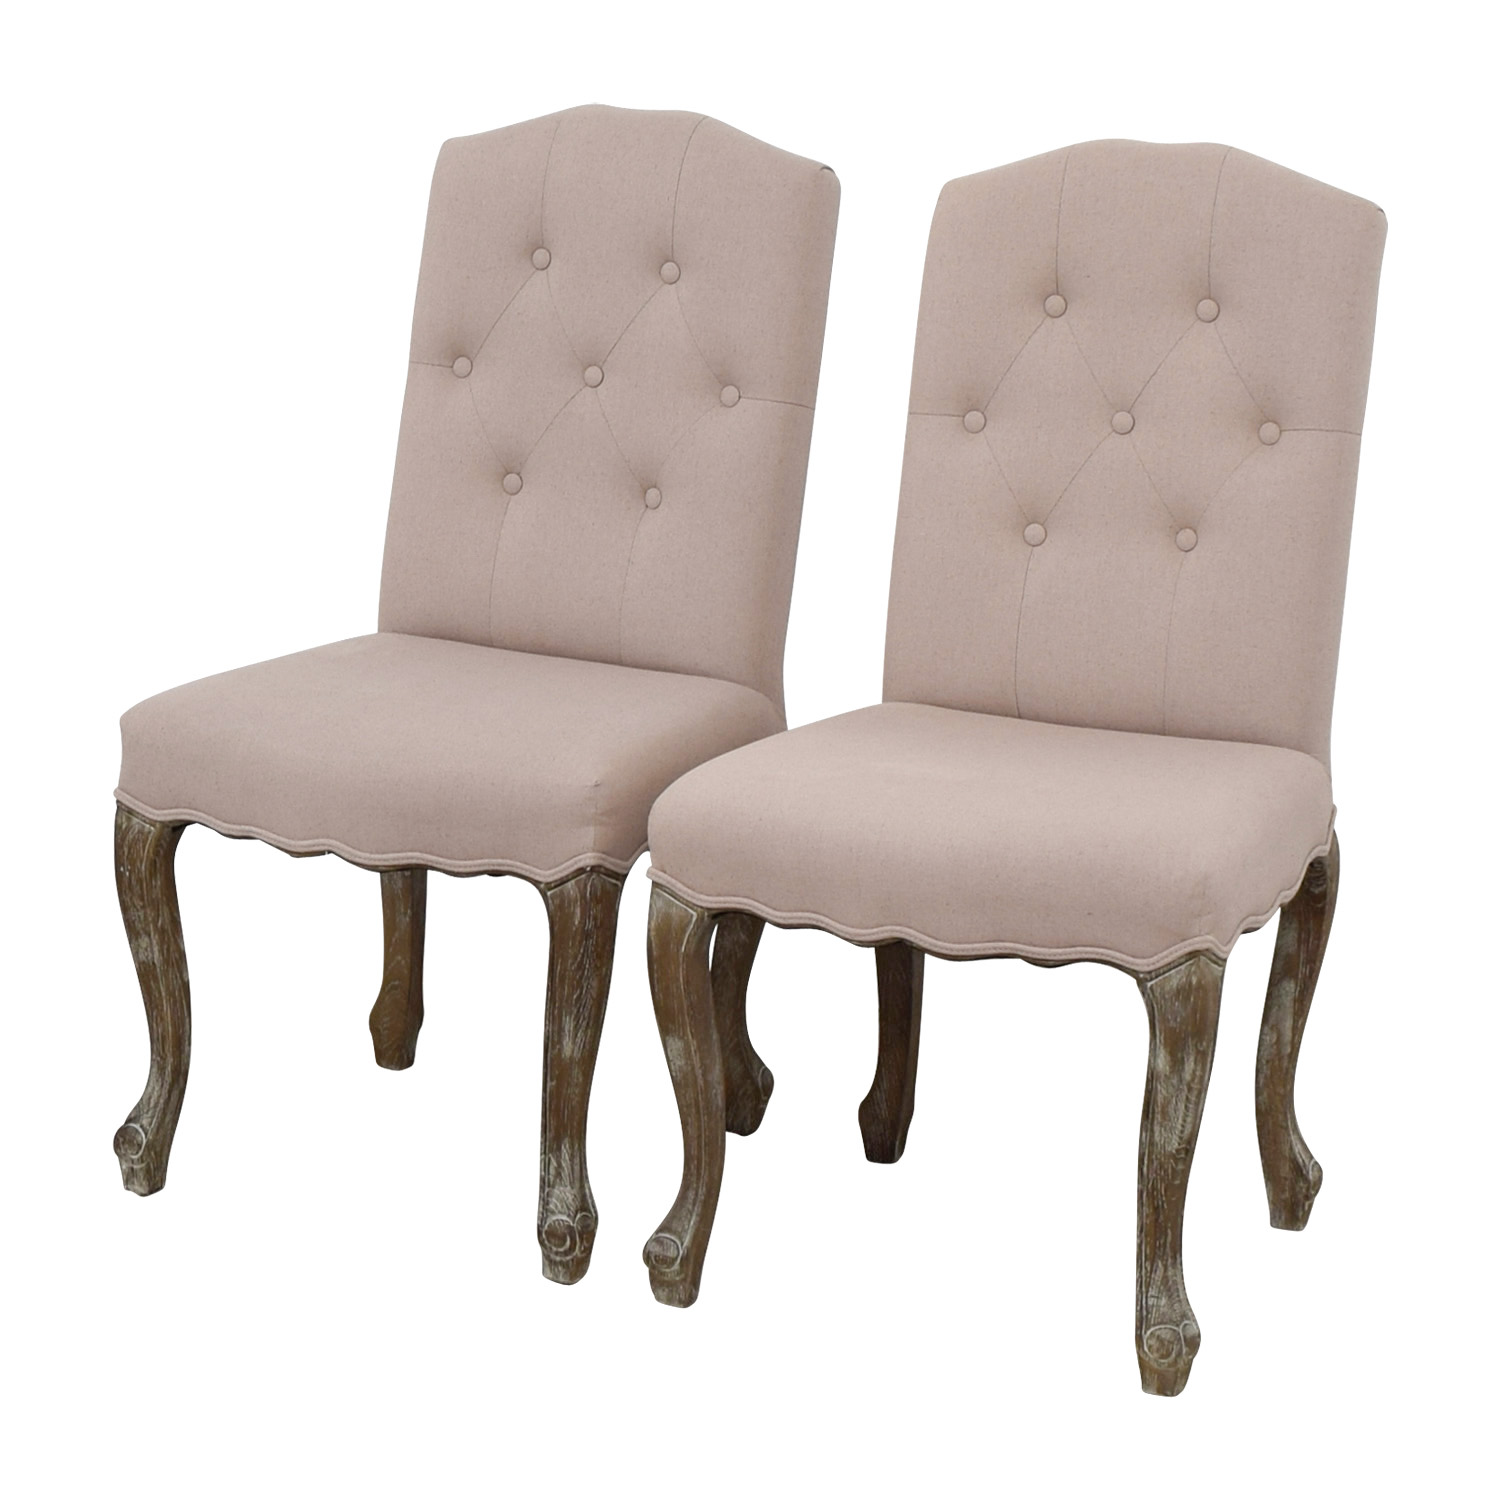 buy Safavieh Safavieh Tufted Beige Side Chairs online